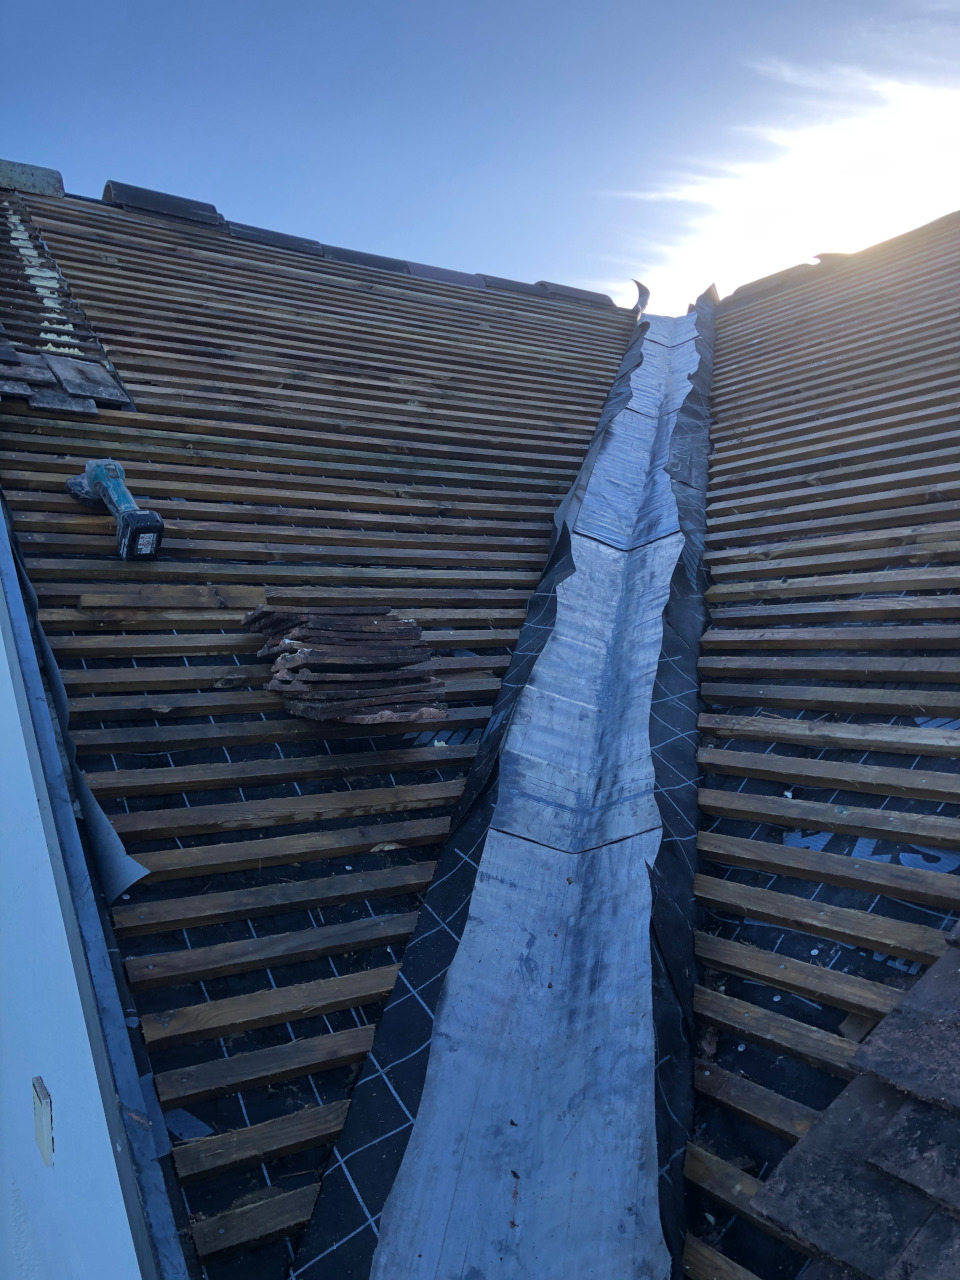 Full slate roof replacement.